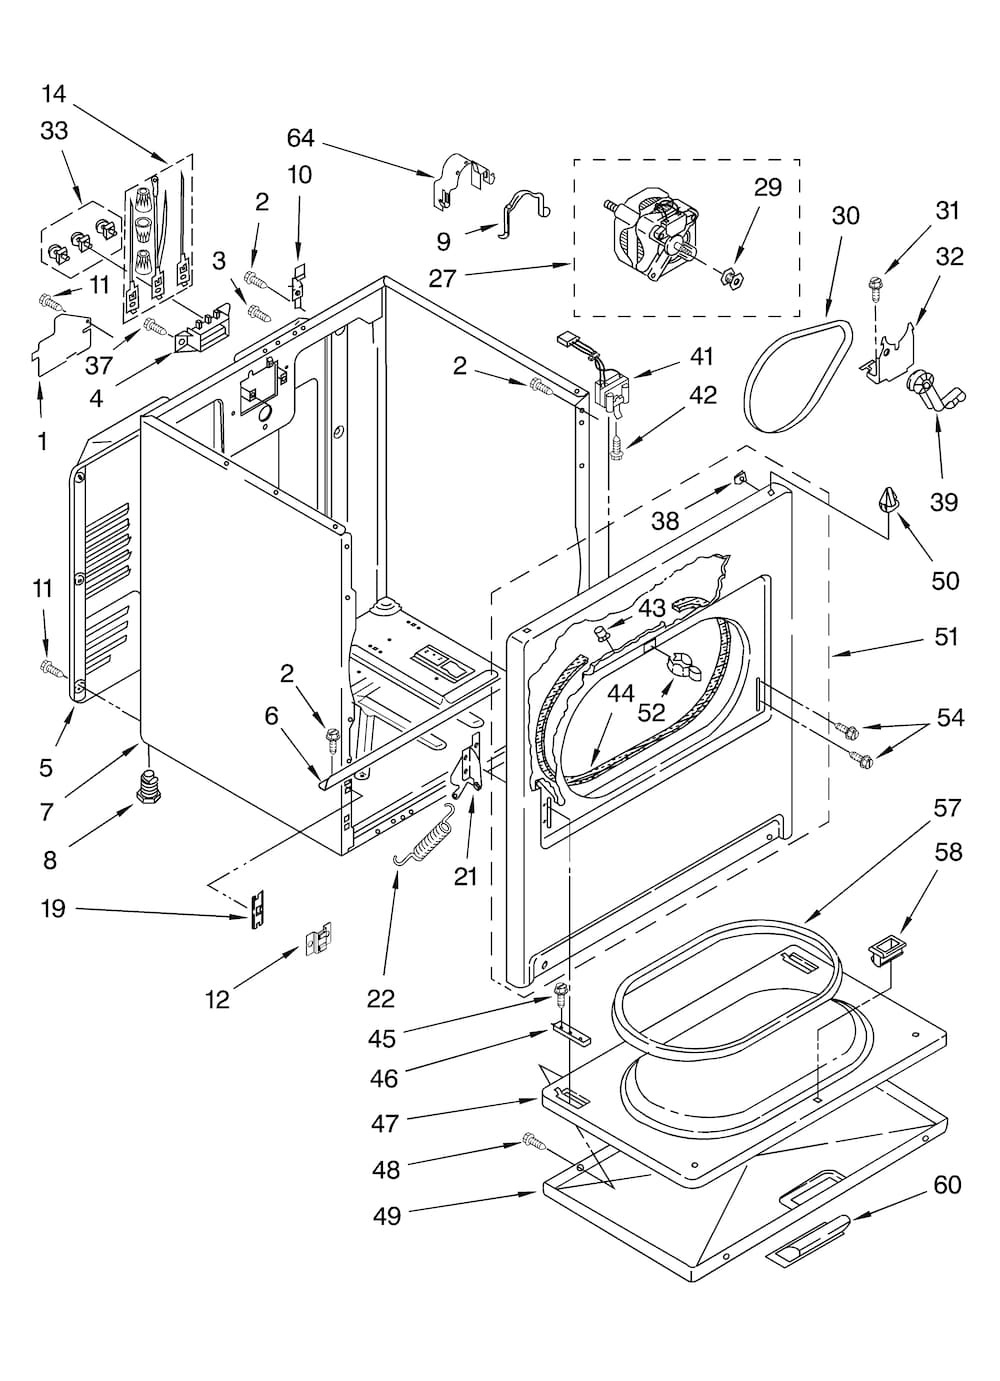 Sears Lady Kenmore Dryer Parts 70 Series Washer Diagram As Well 80 Residential Model Intended For 1000x1381